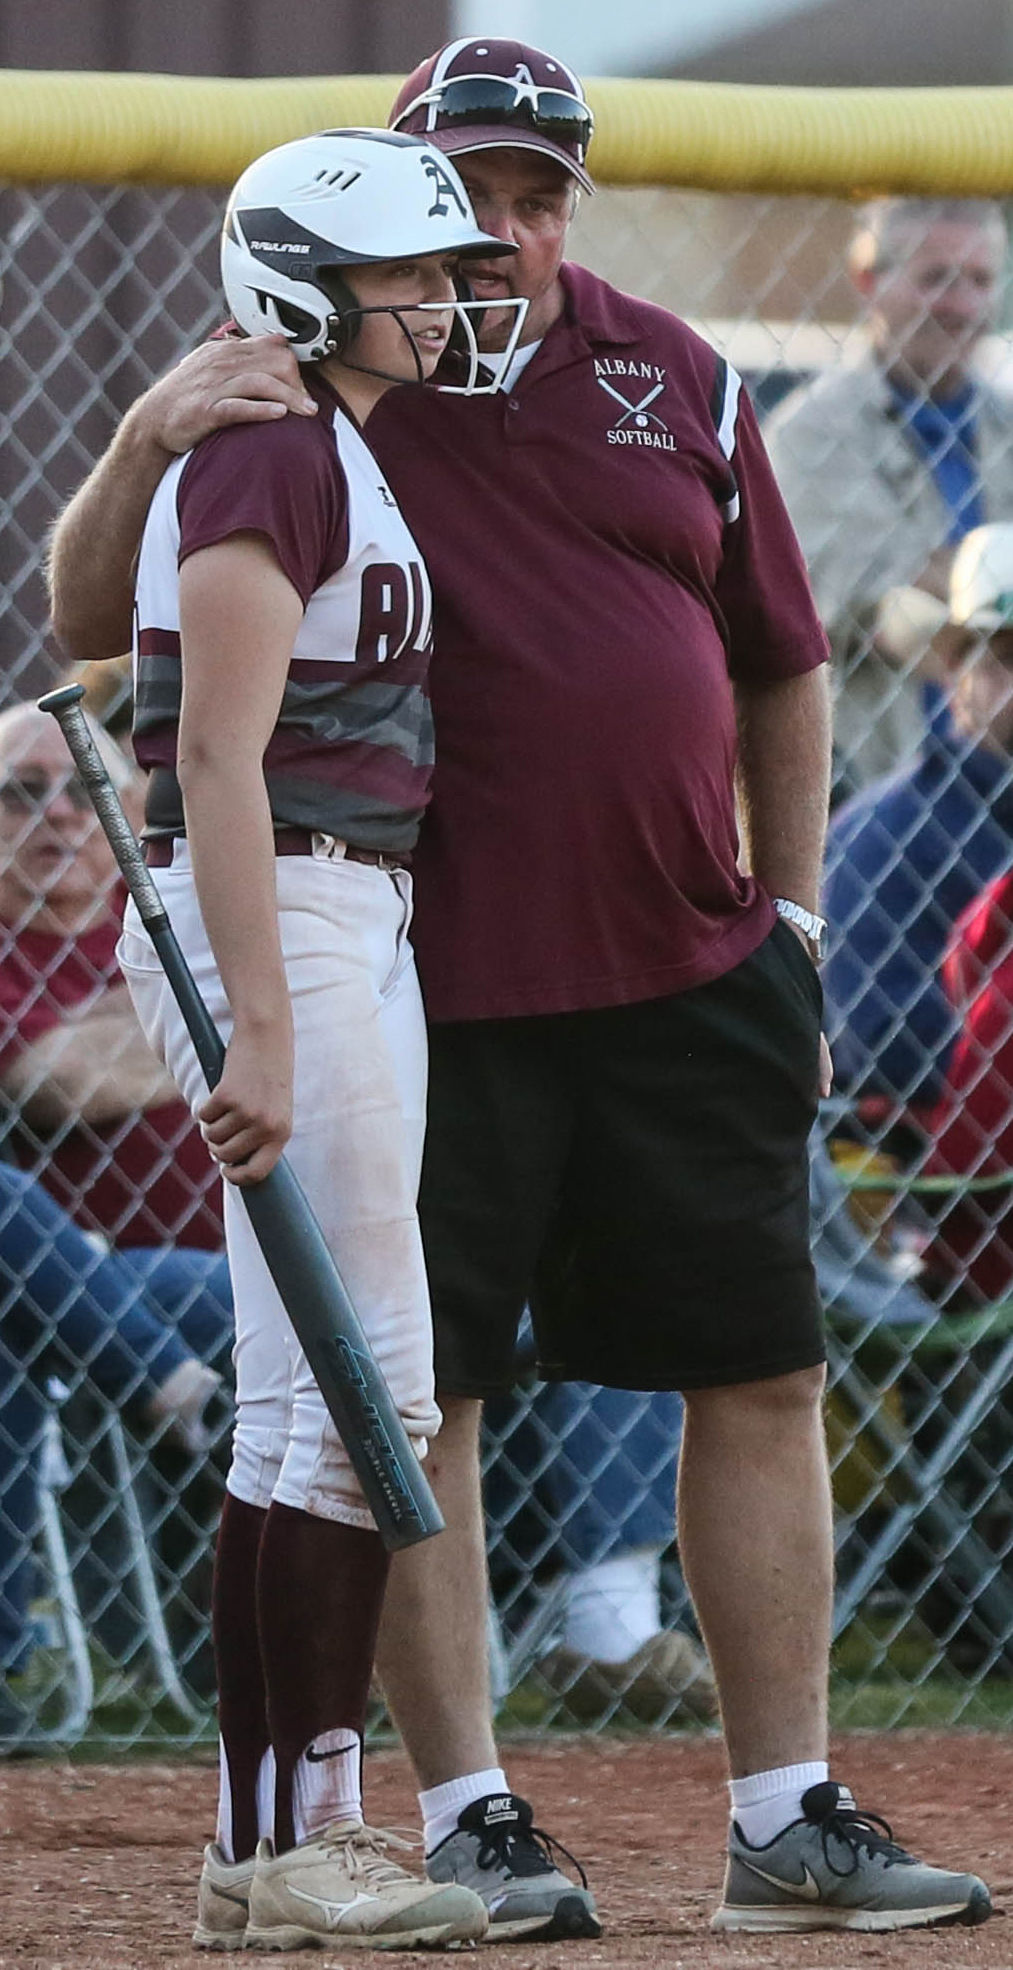 Marksville-Albany softball David Knight Madison Knight